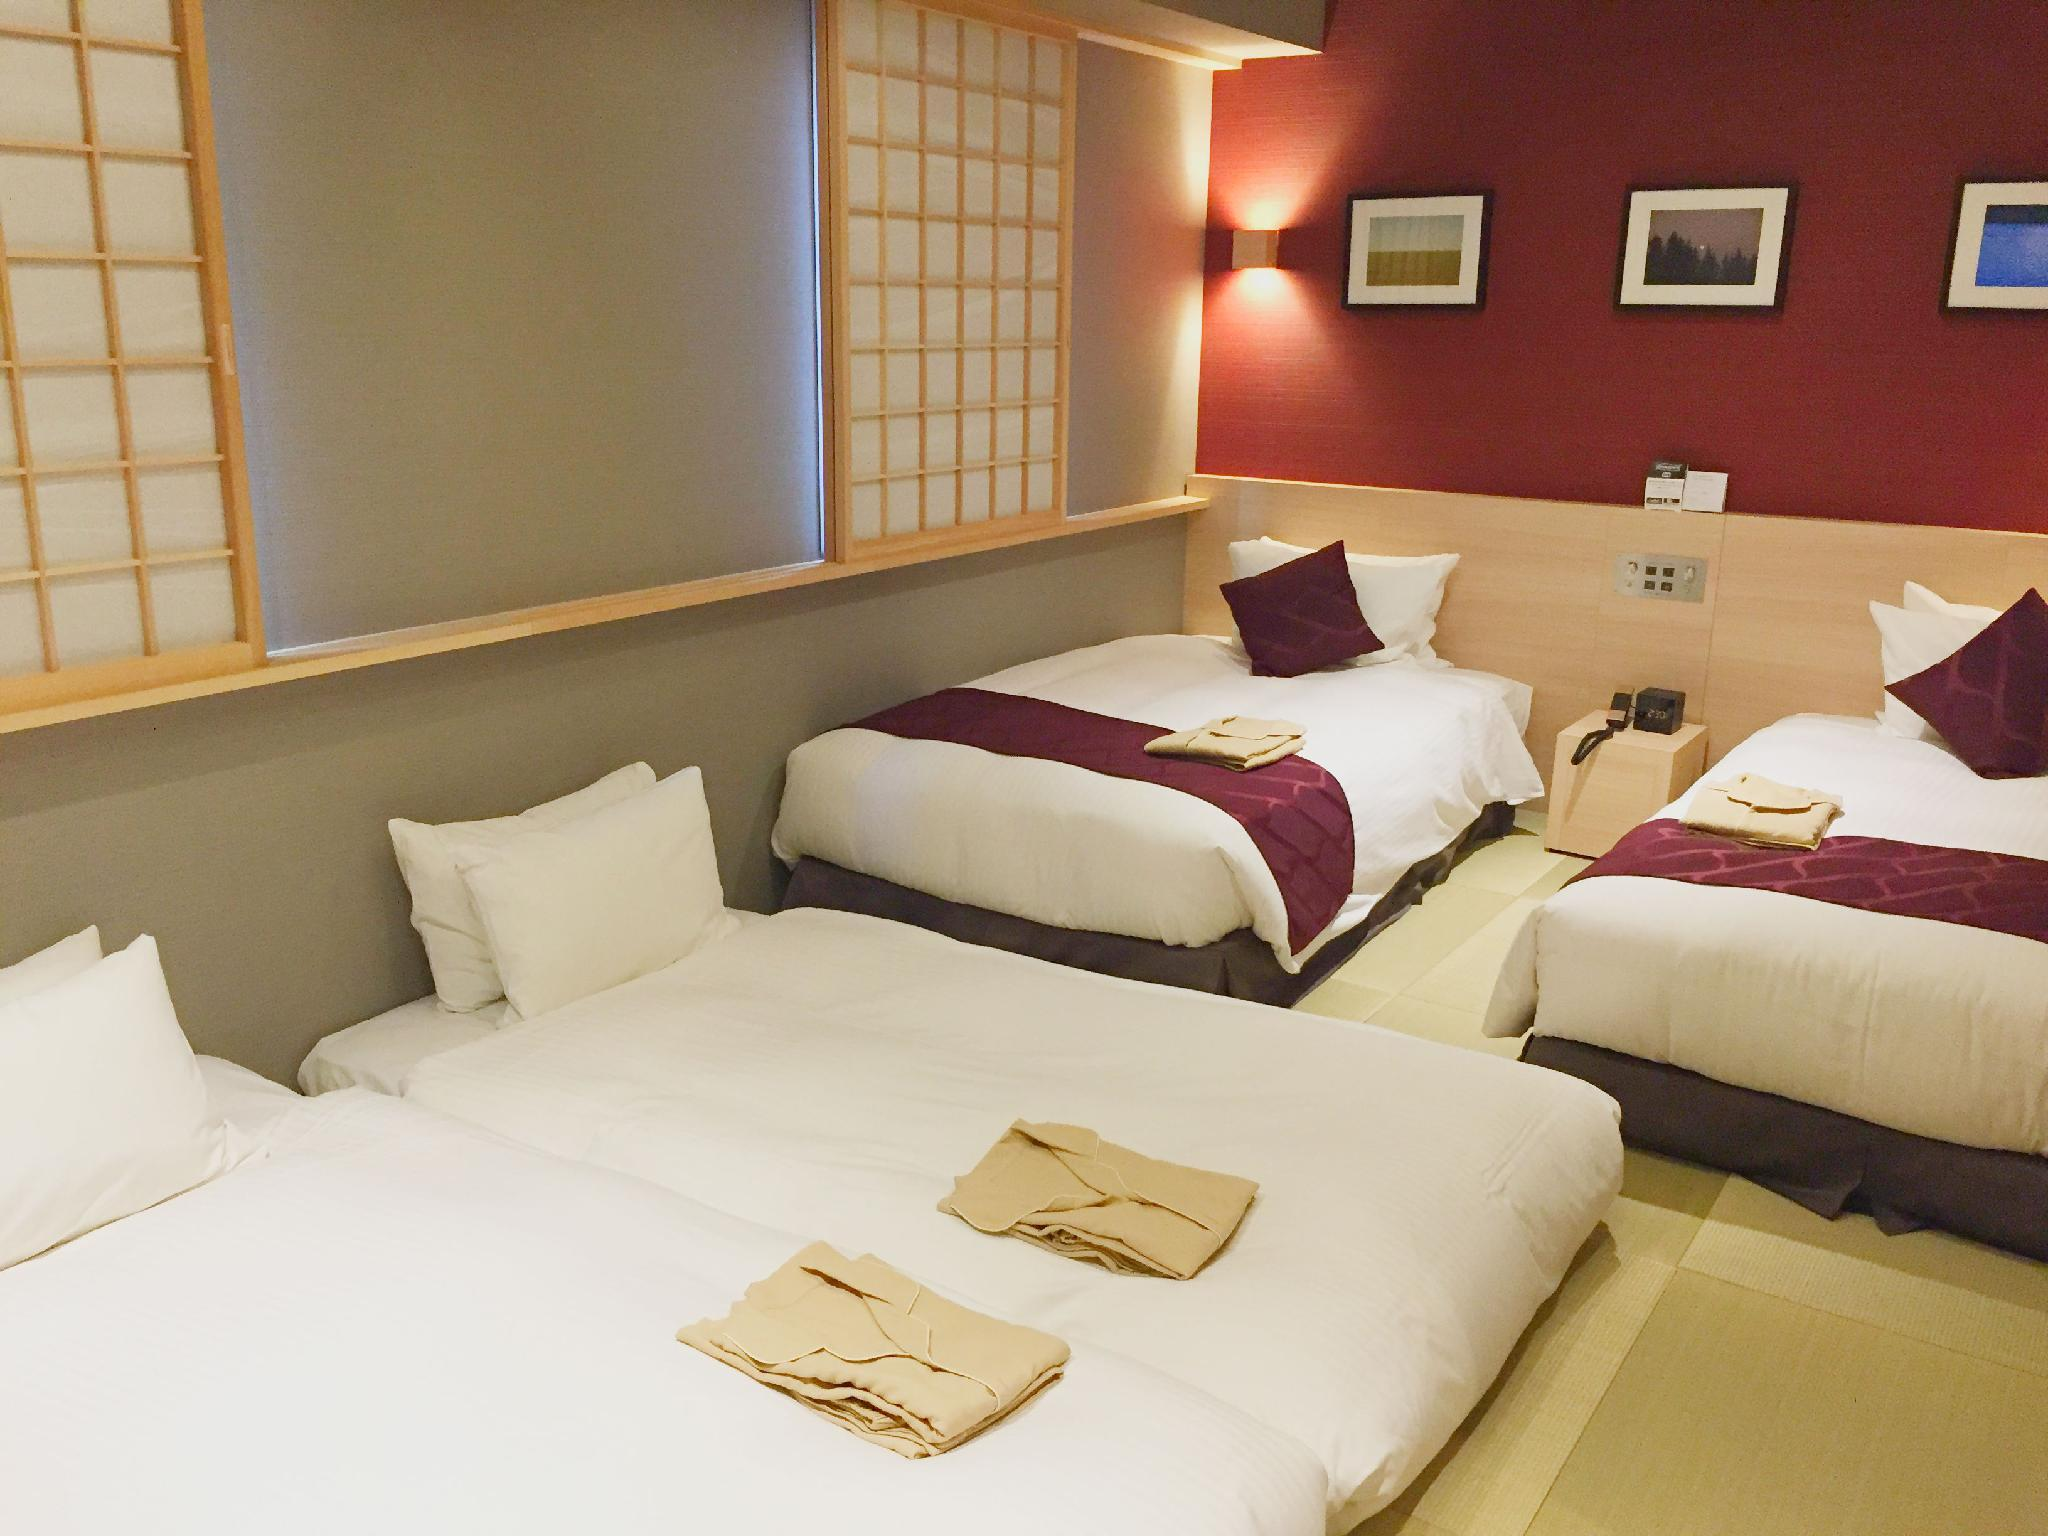 和室 2シングルベッド(禁煙) (2 Single Beds, Non-Smoking, Two Futon Beds, Japanese Style Room)